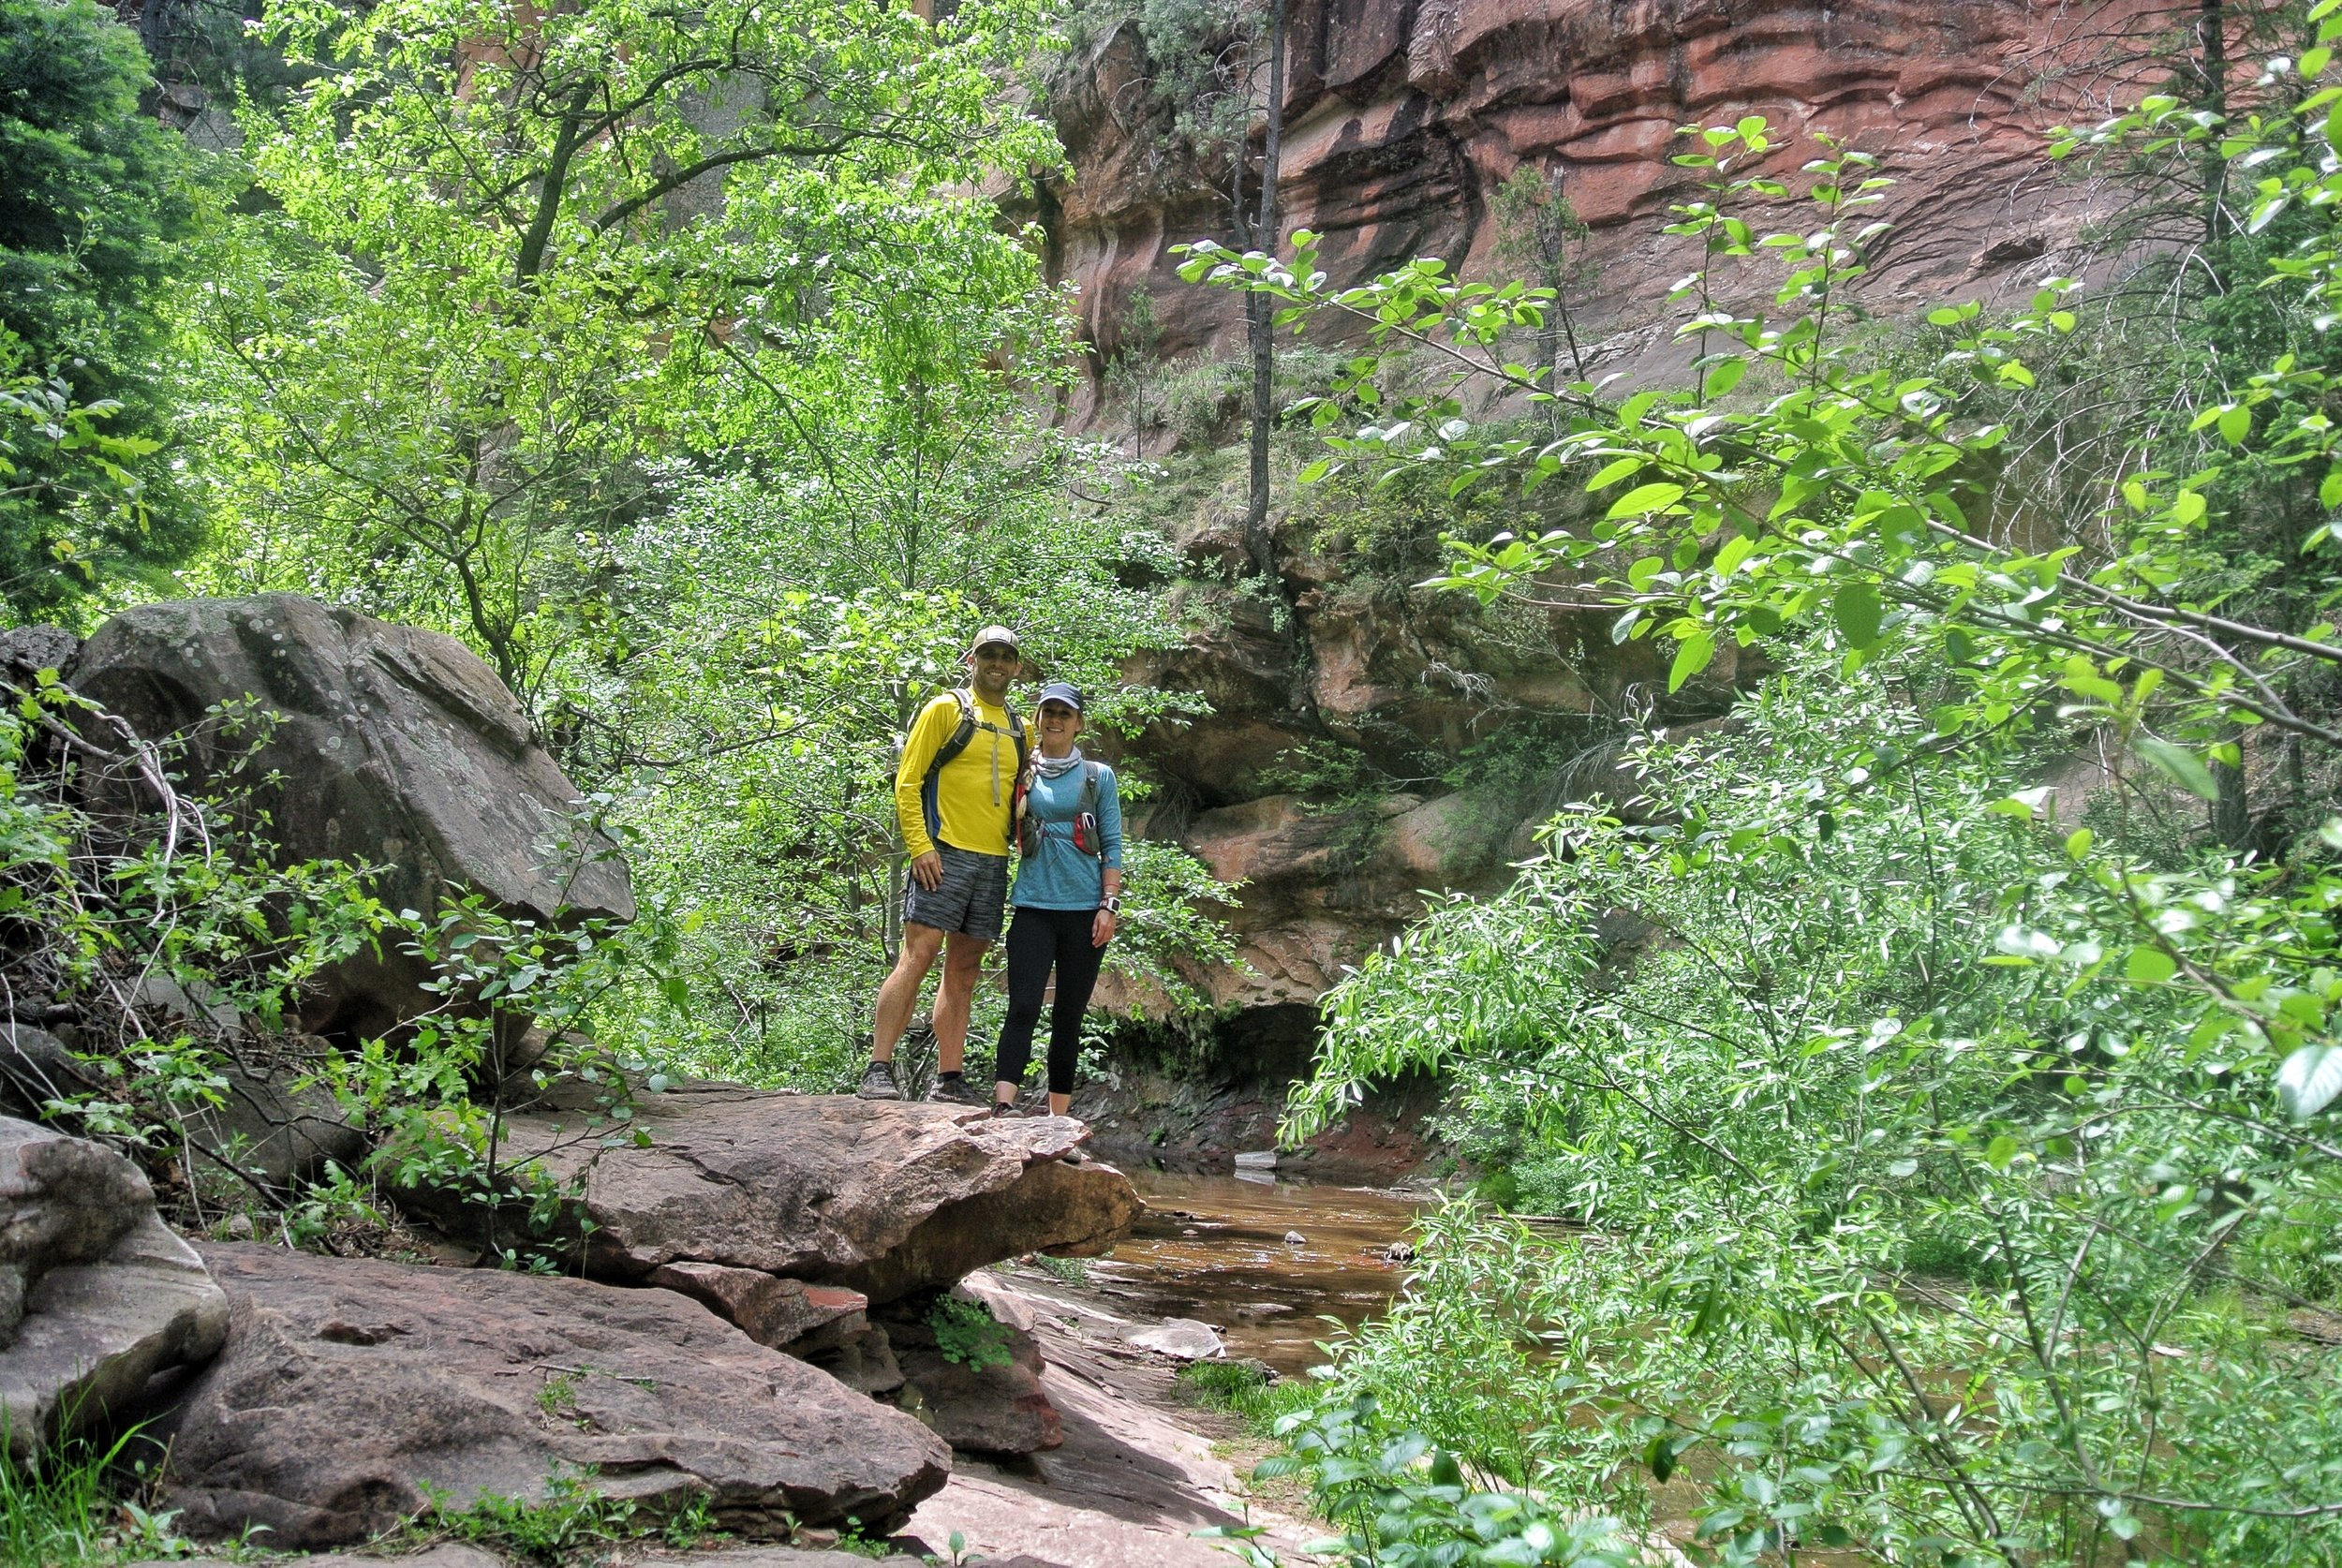 It's so green! West Fork, Coconino National Forest, Sedona Arizona.